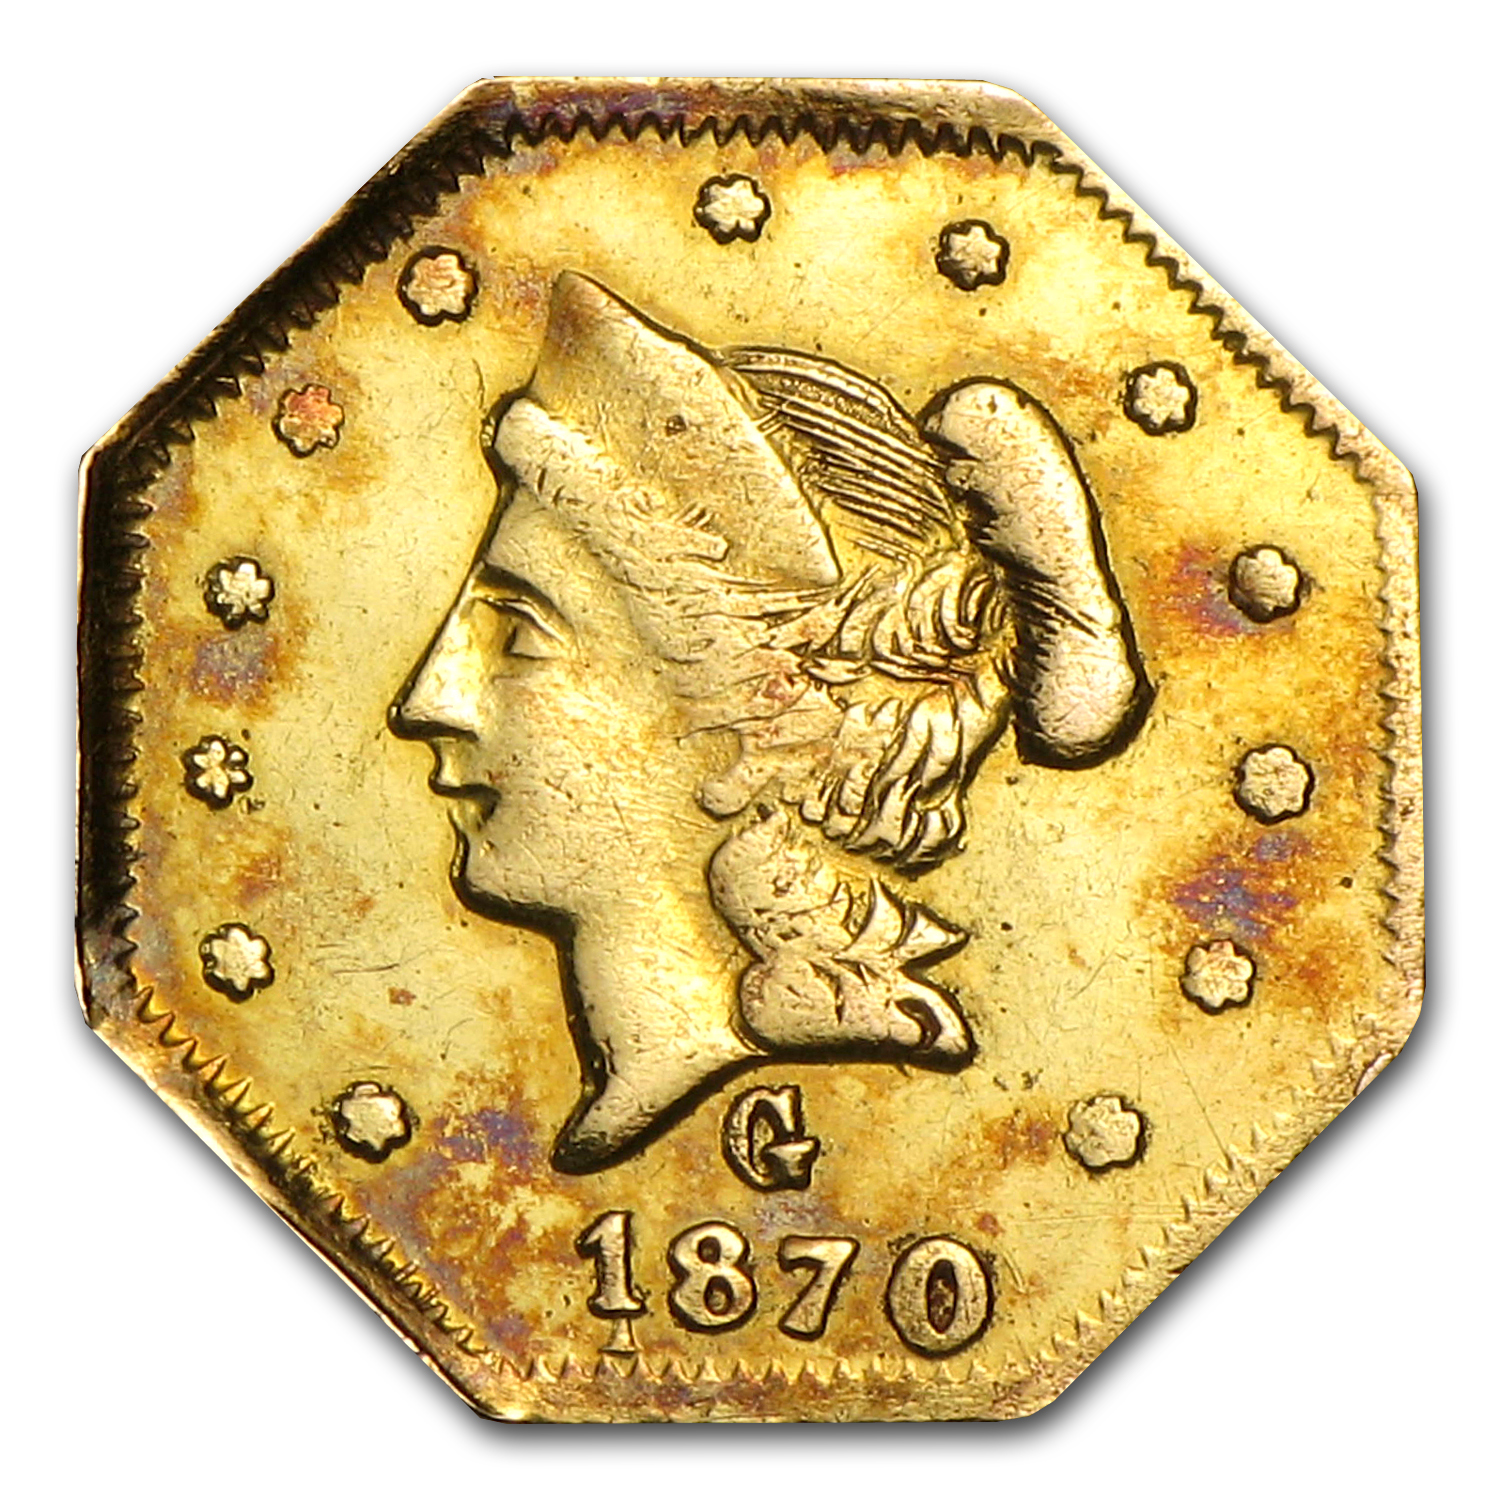 1870 Liberty Octagonal 50 Cent Gold Unc Details (BG-922, Cleaned)